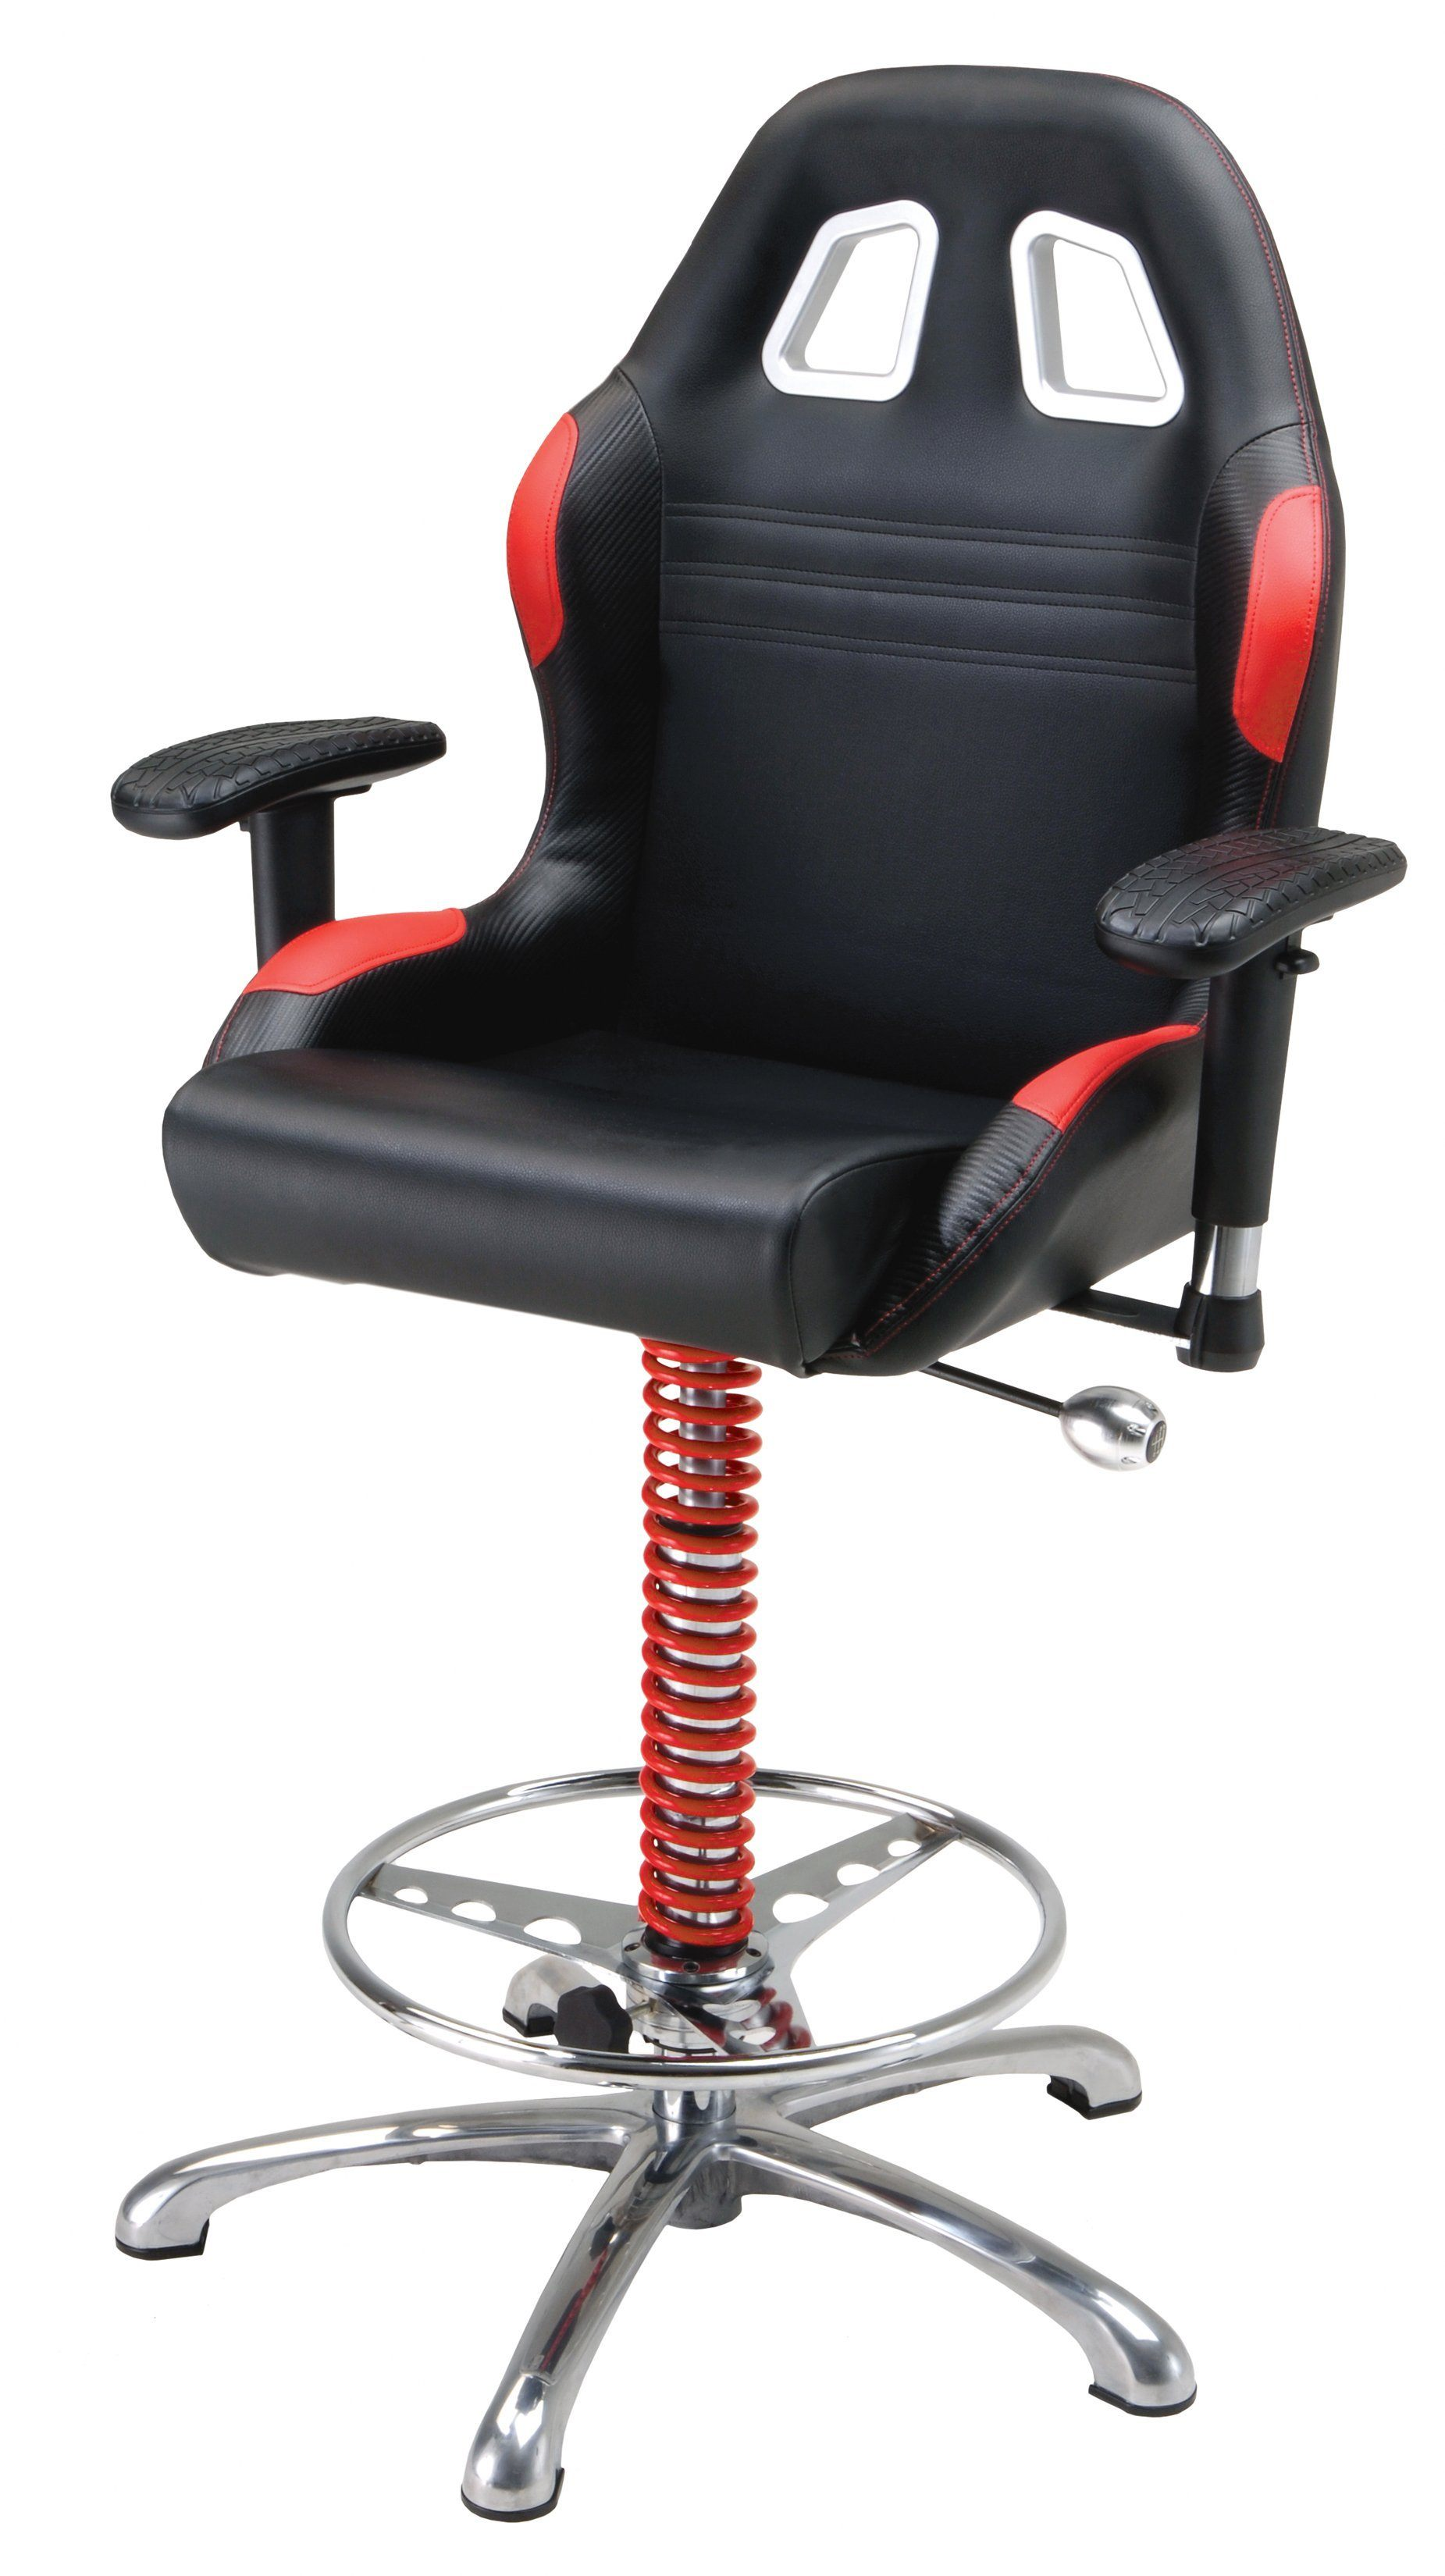 Crew Chief Bar Chair Info-Tech Automotive